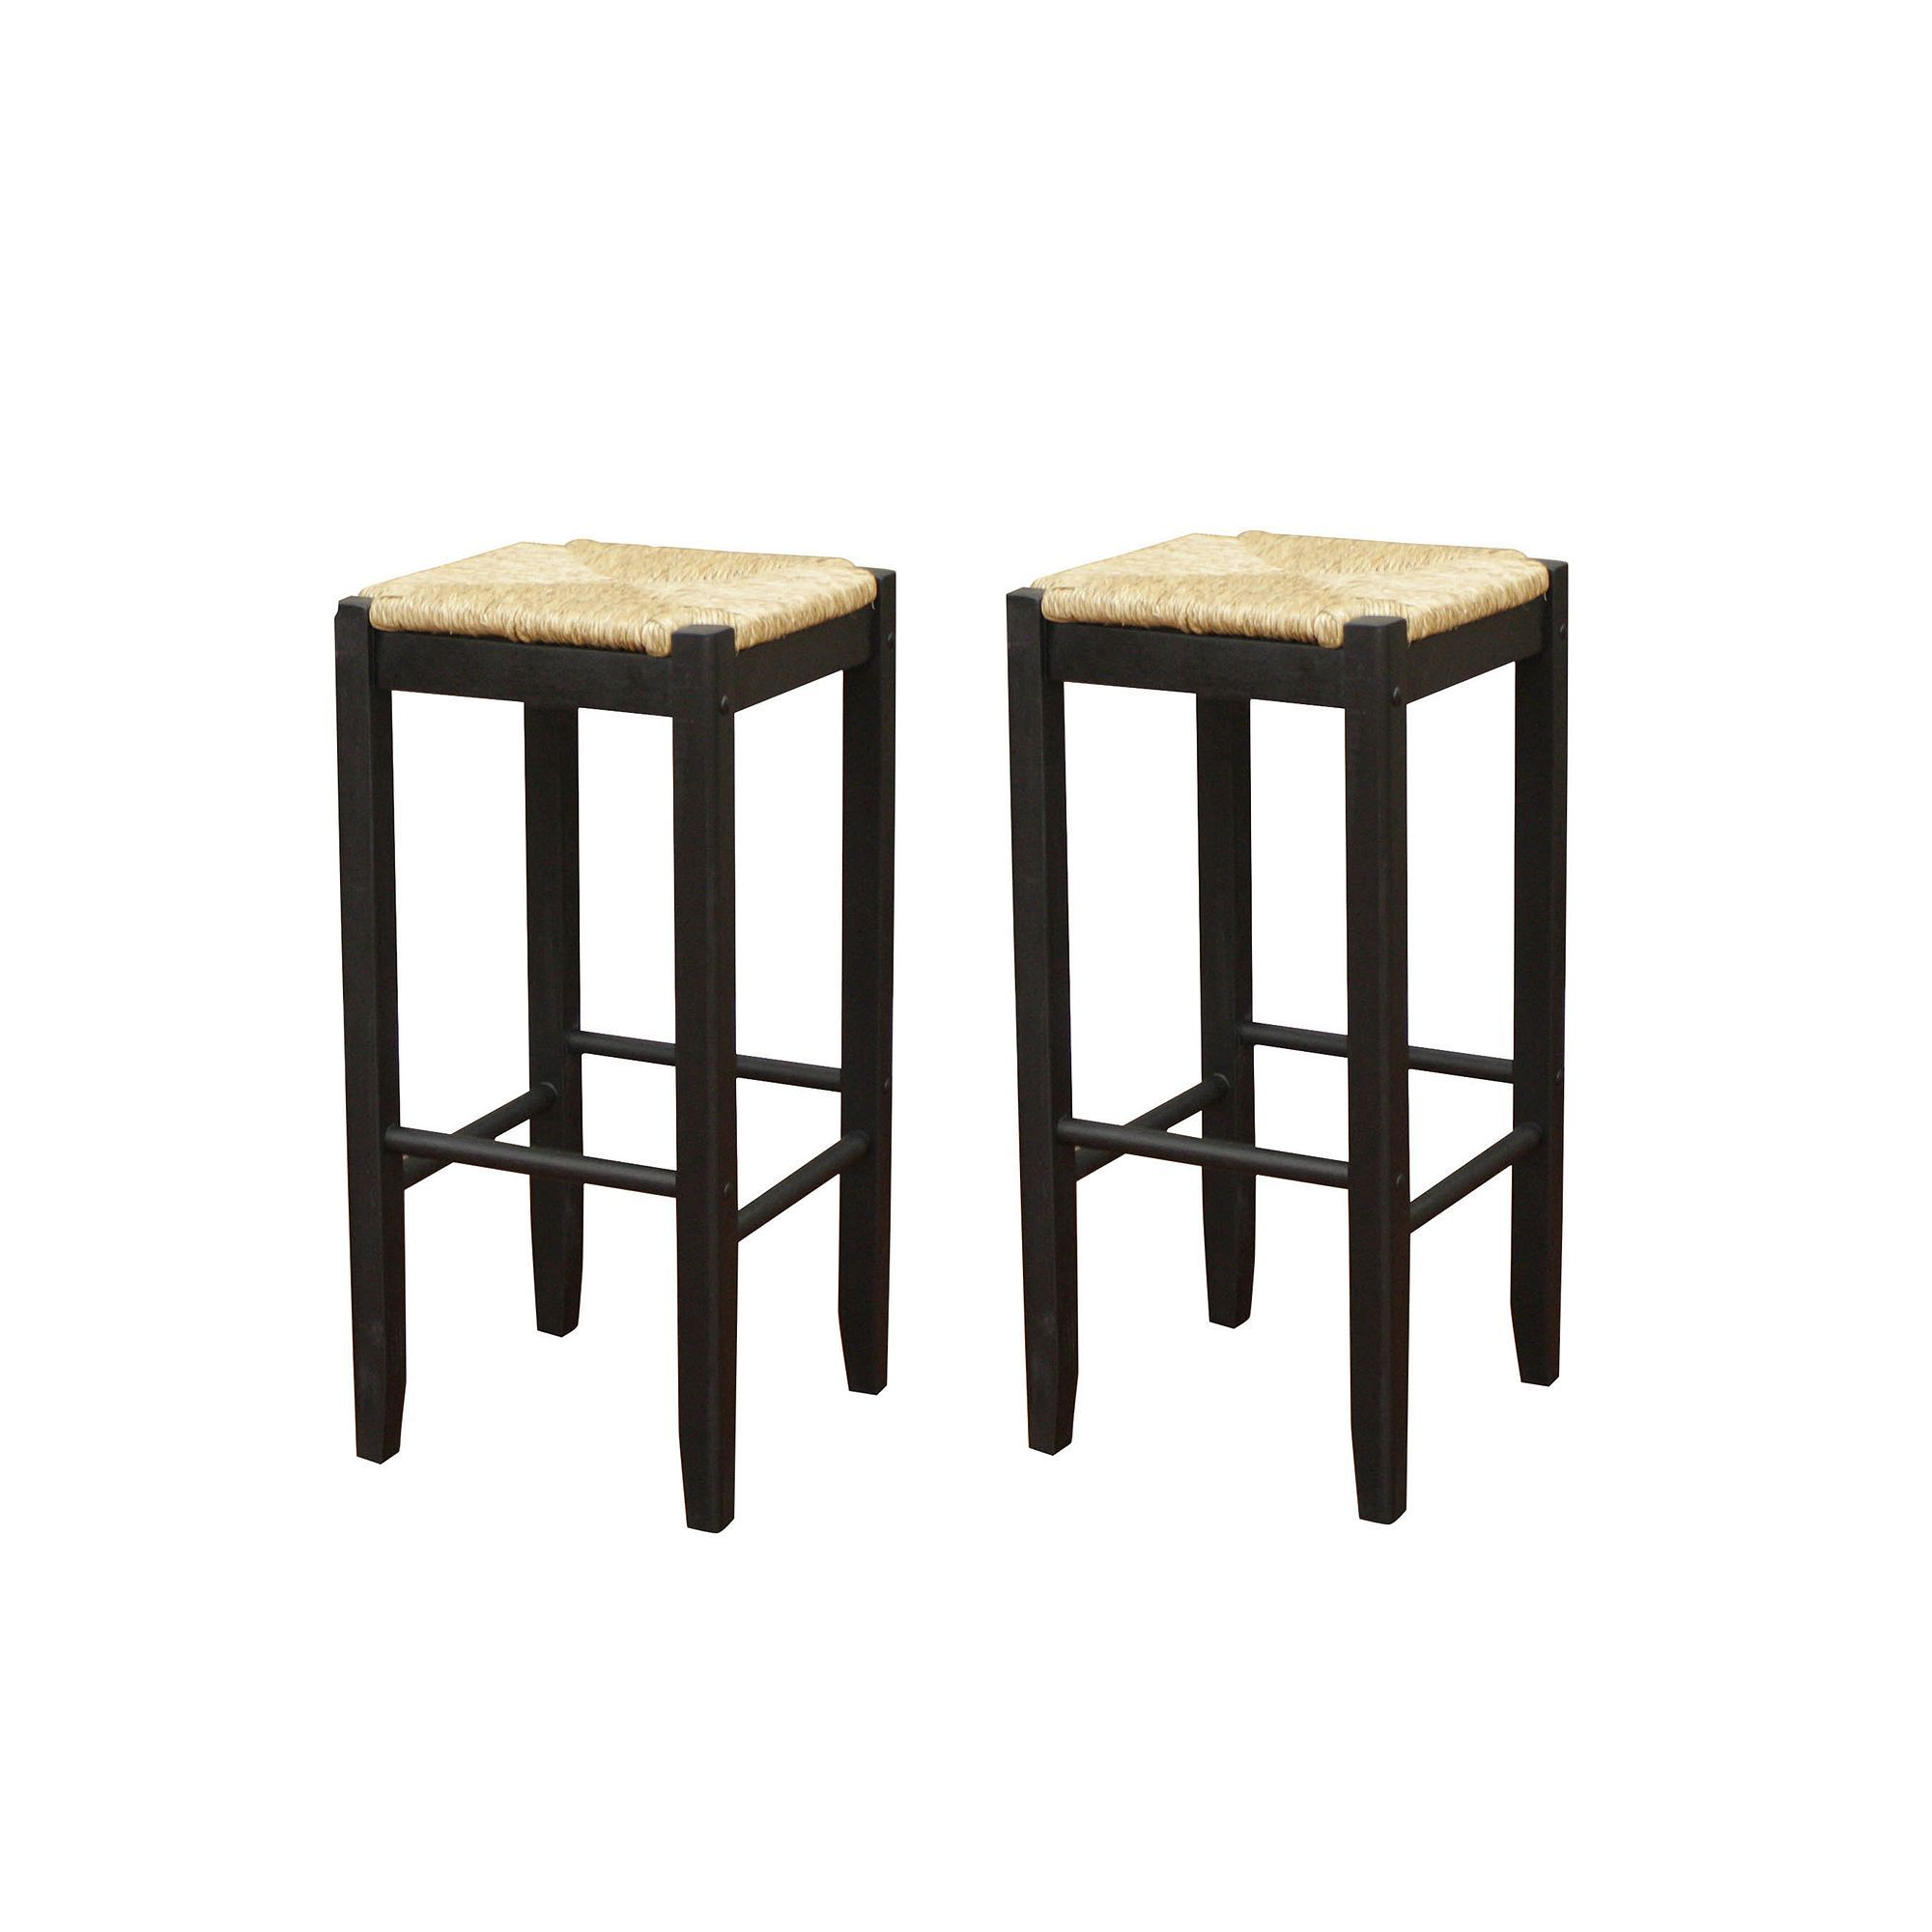 Stehtisch Rattan American Heritage Billiards 2 Pc Rattan Bar Stool Set Black